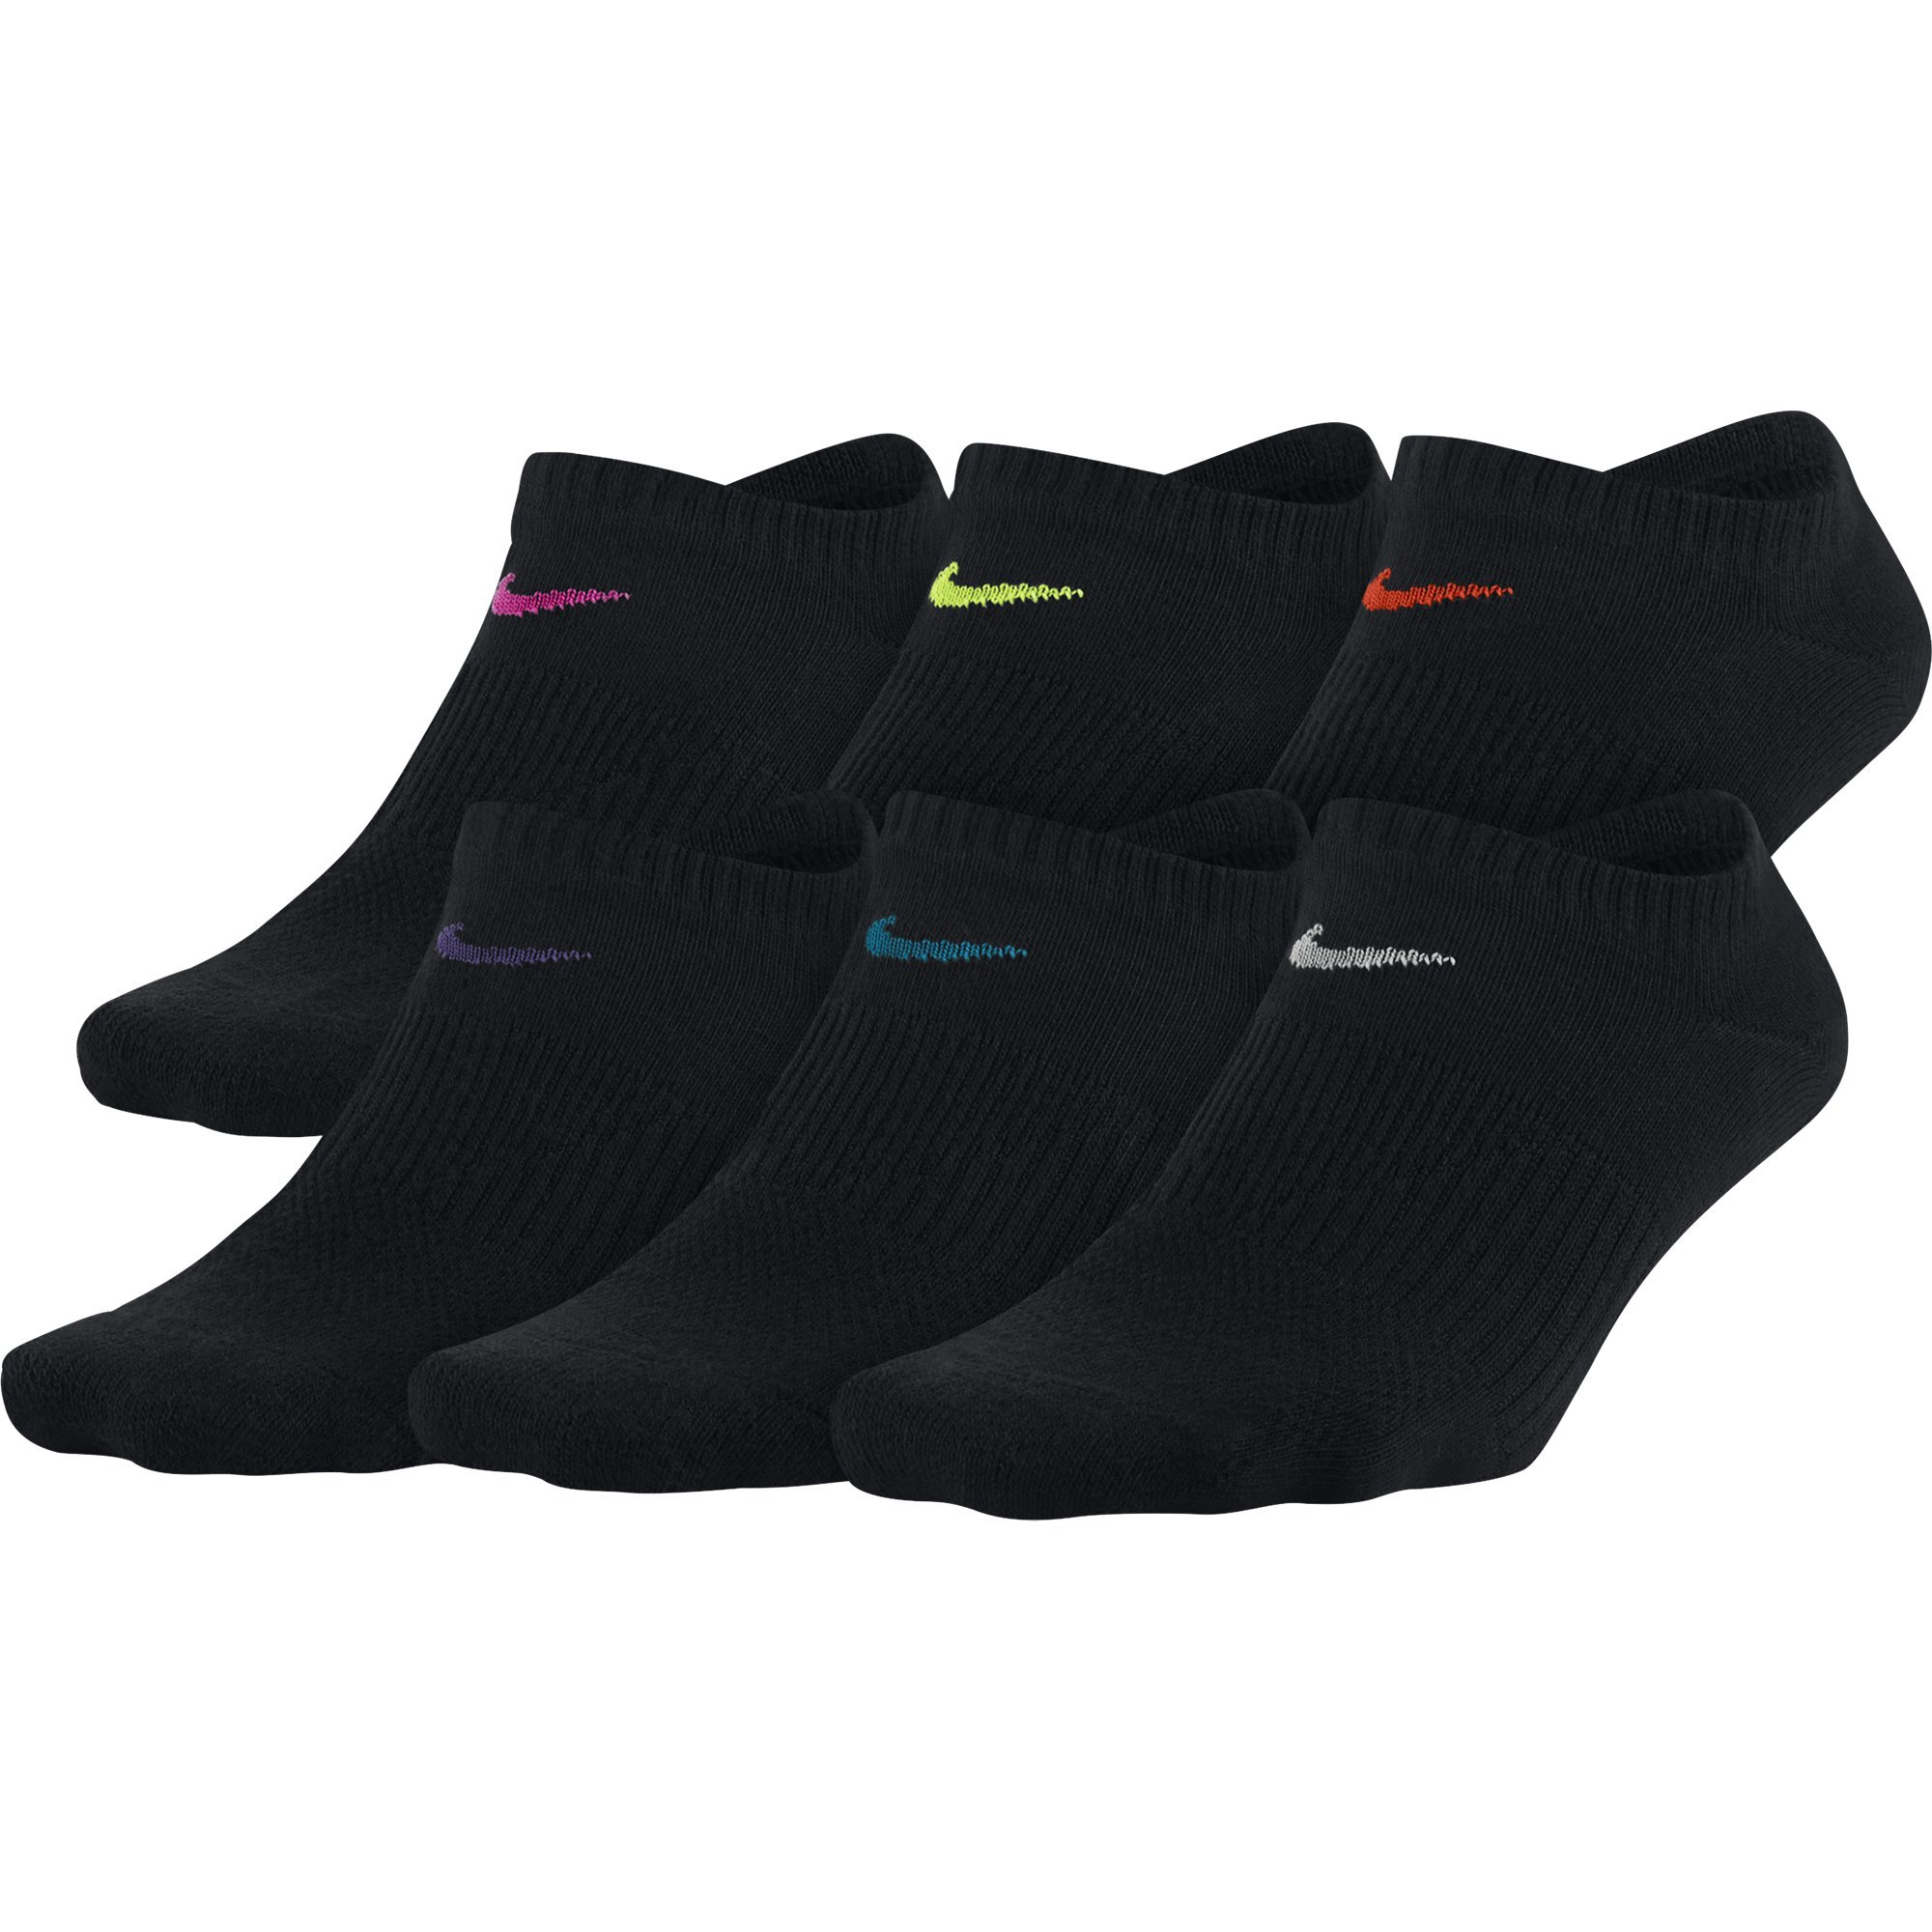 Nike Women's Everyday Lightweight No-Show Socks (6 Pair), Black/Multicolor, Small by Nike